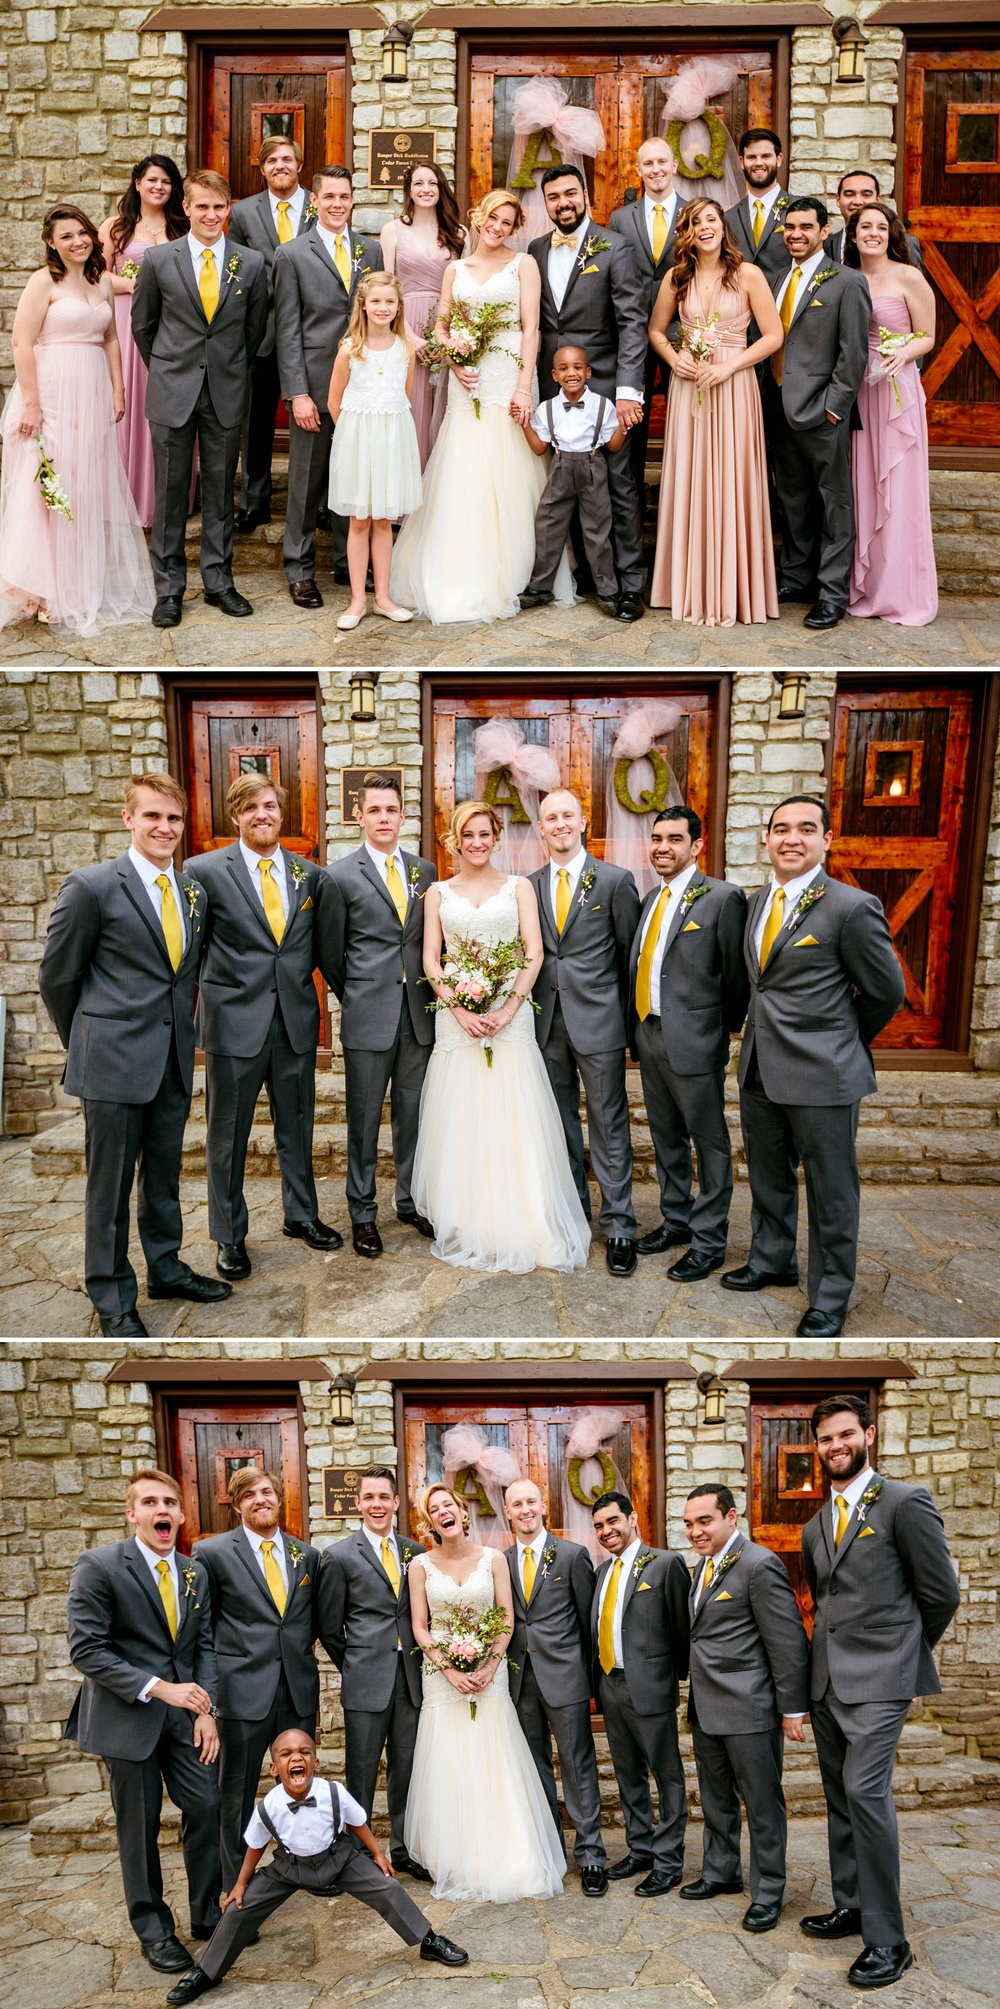 cedars of lebanon state park wedding nashville | victoria heer photography | victoria heer | san diego wedding photographer